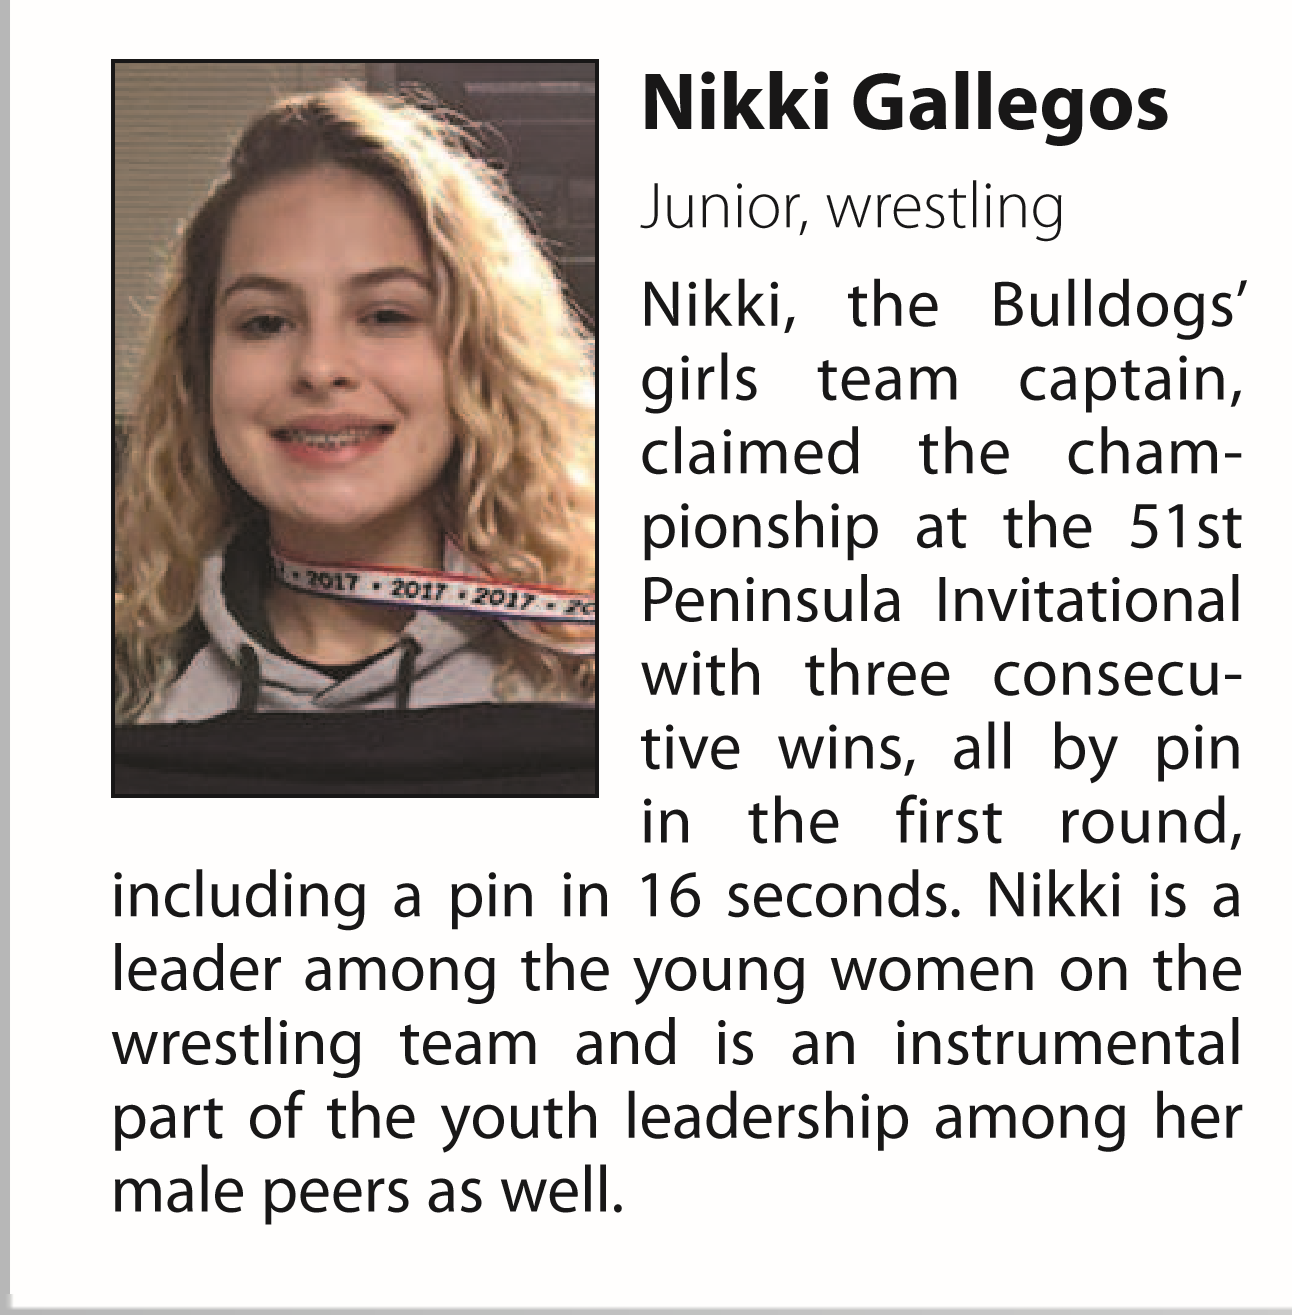 Nikki Gallegos named athlete of the month